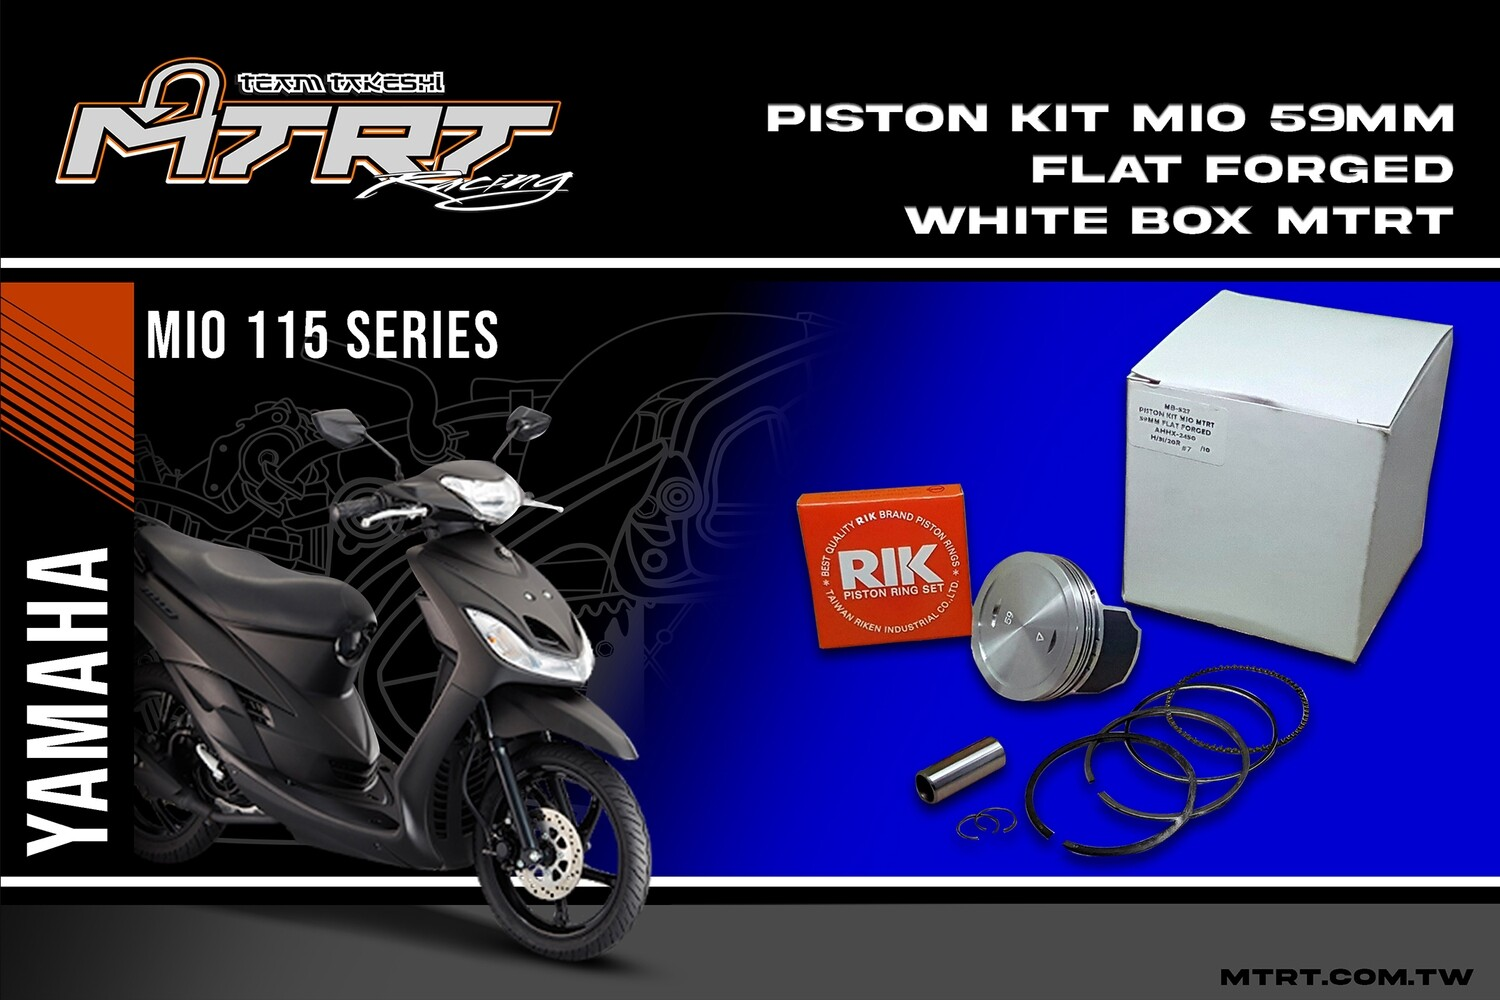 PISTON  KIT  MIO 59MM FLAT FORGED MTRT